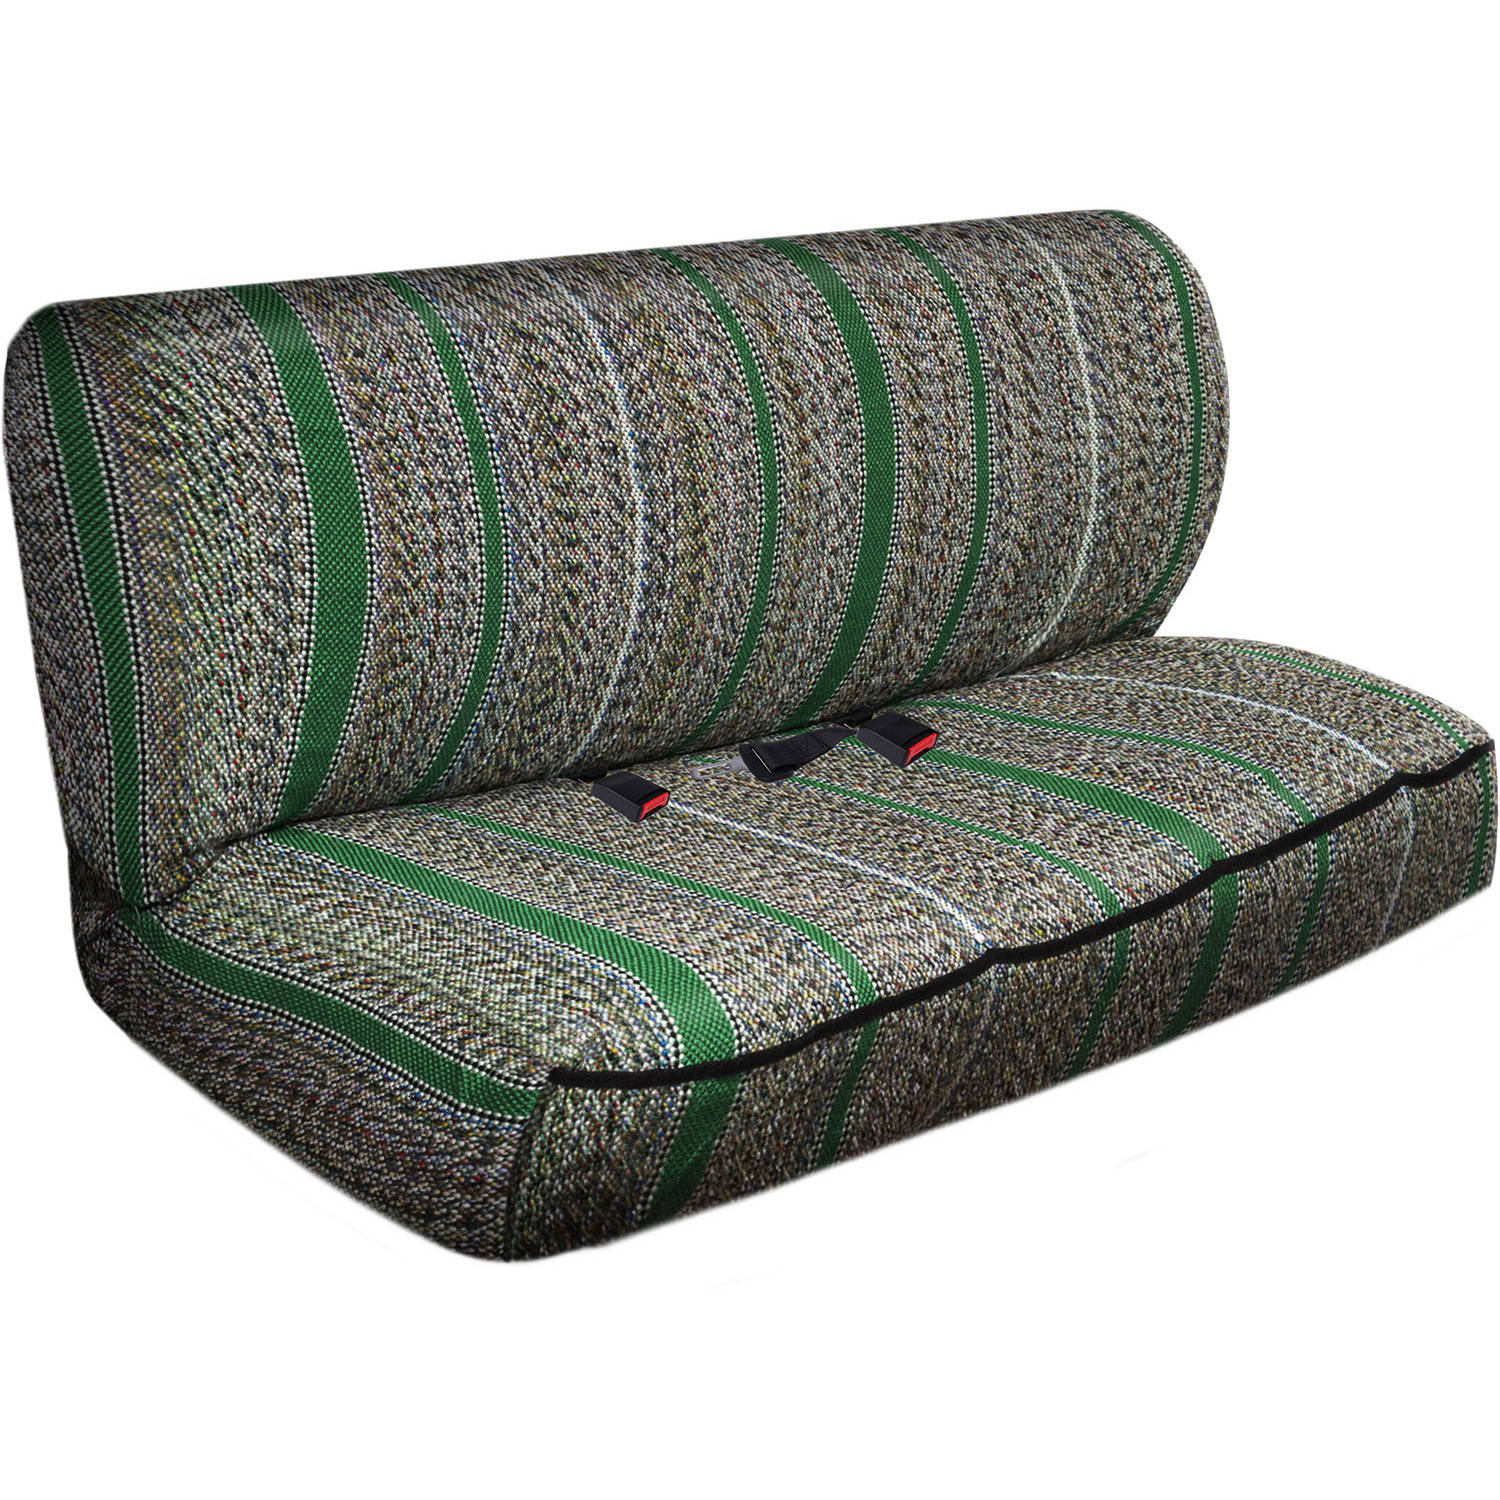 OxGord 2-Piece Full Size Heavy Duty Saddle Blanket Bench Seat Covers, Green